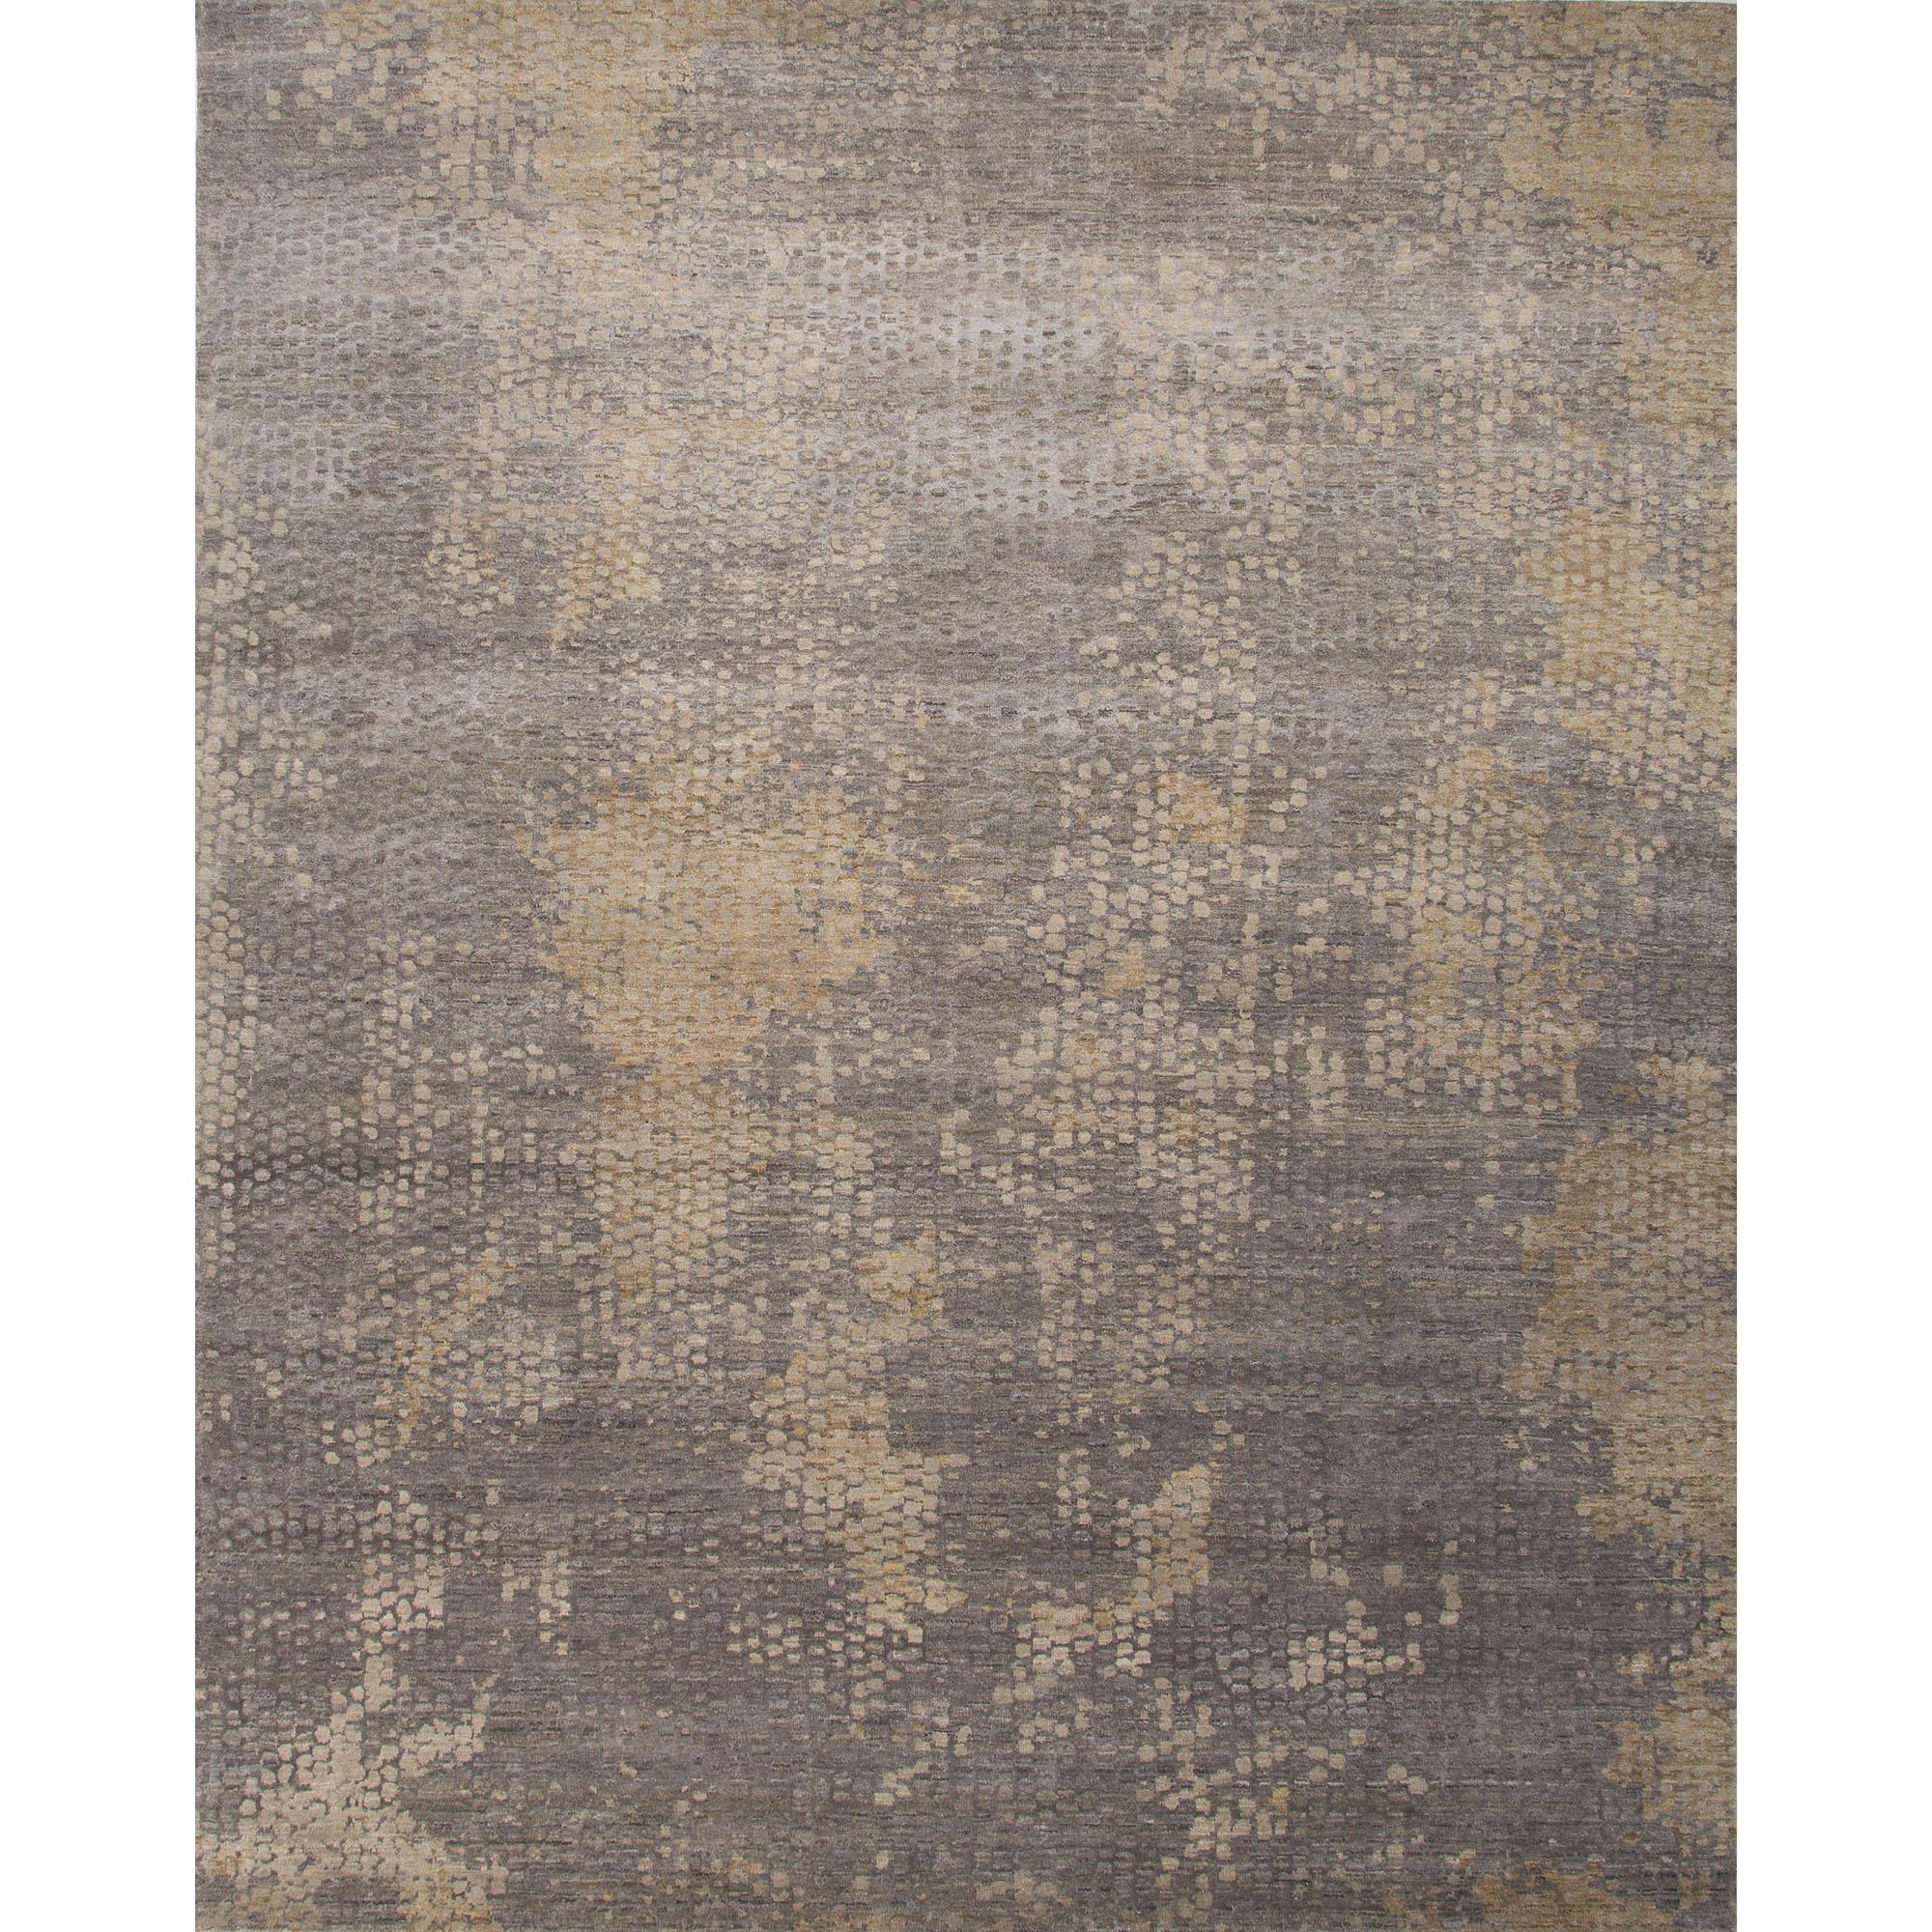 Chaos Theory By Kavi 5.6 x 8 Rug by JAIPUR Living at Sprintz Furniture